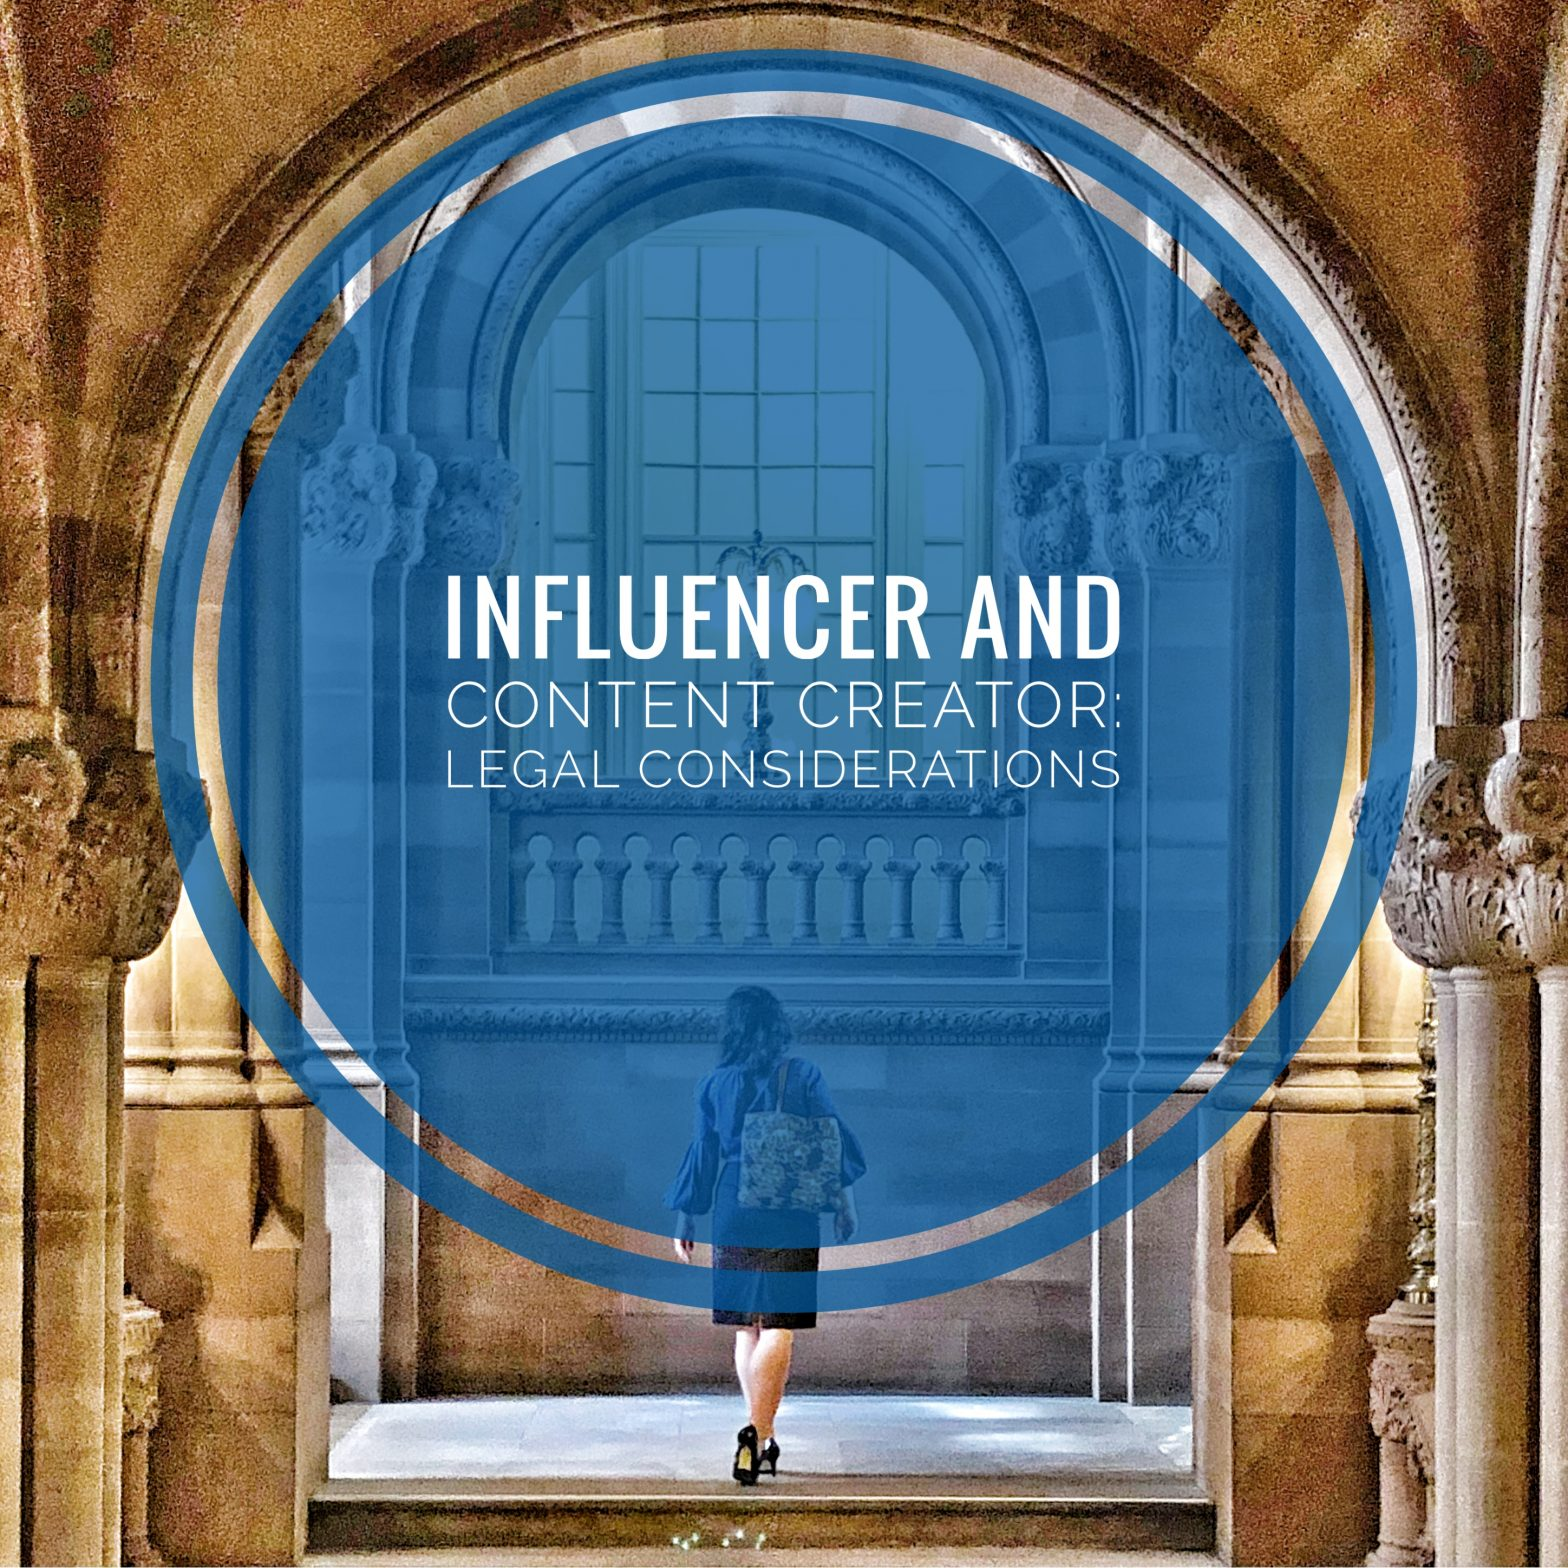 Legal Considerations for Influencers and Content Creators